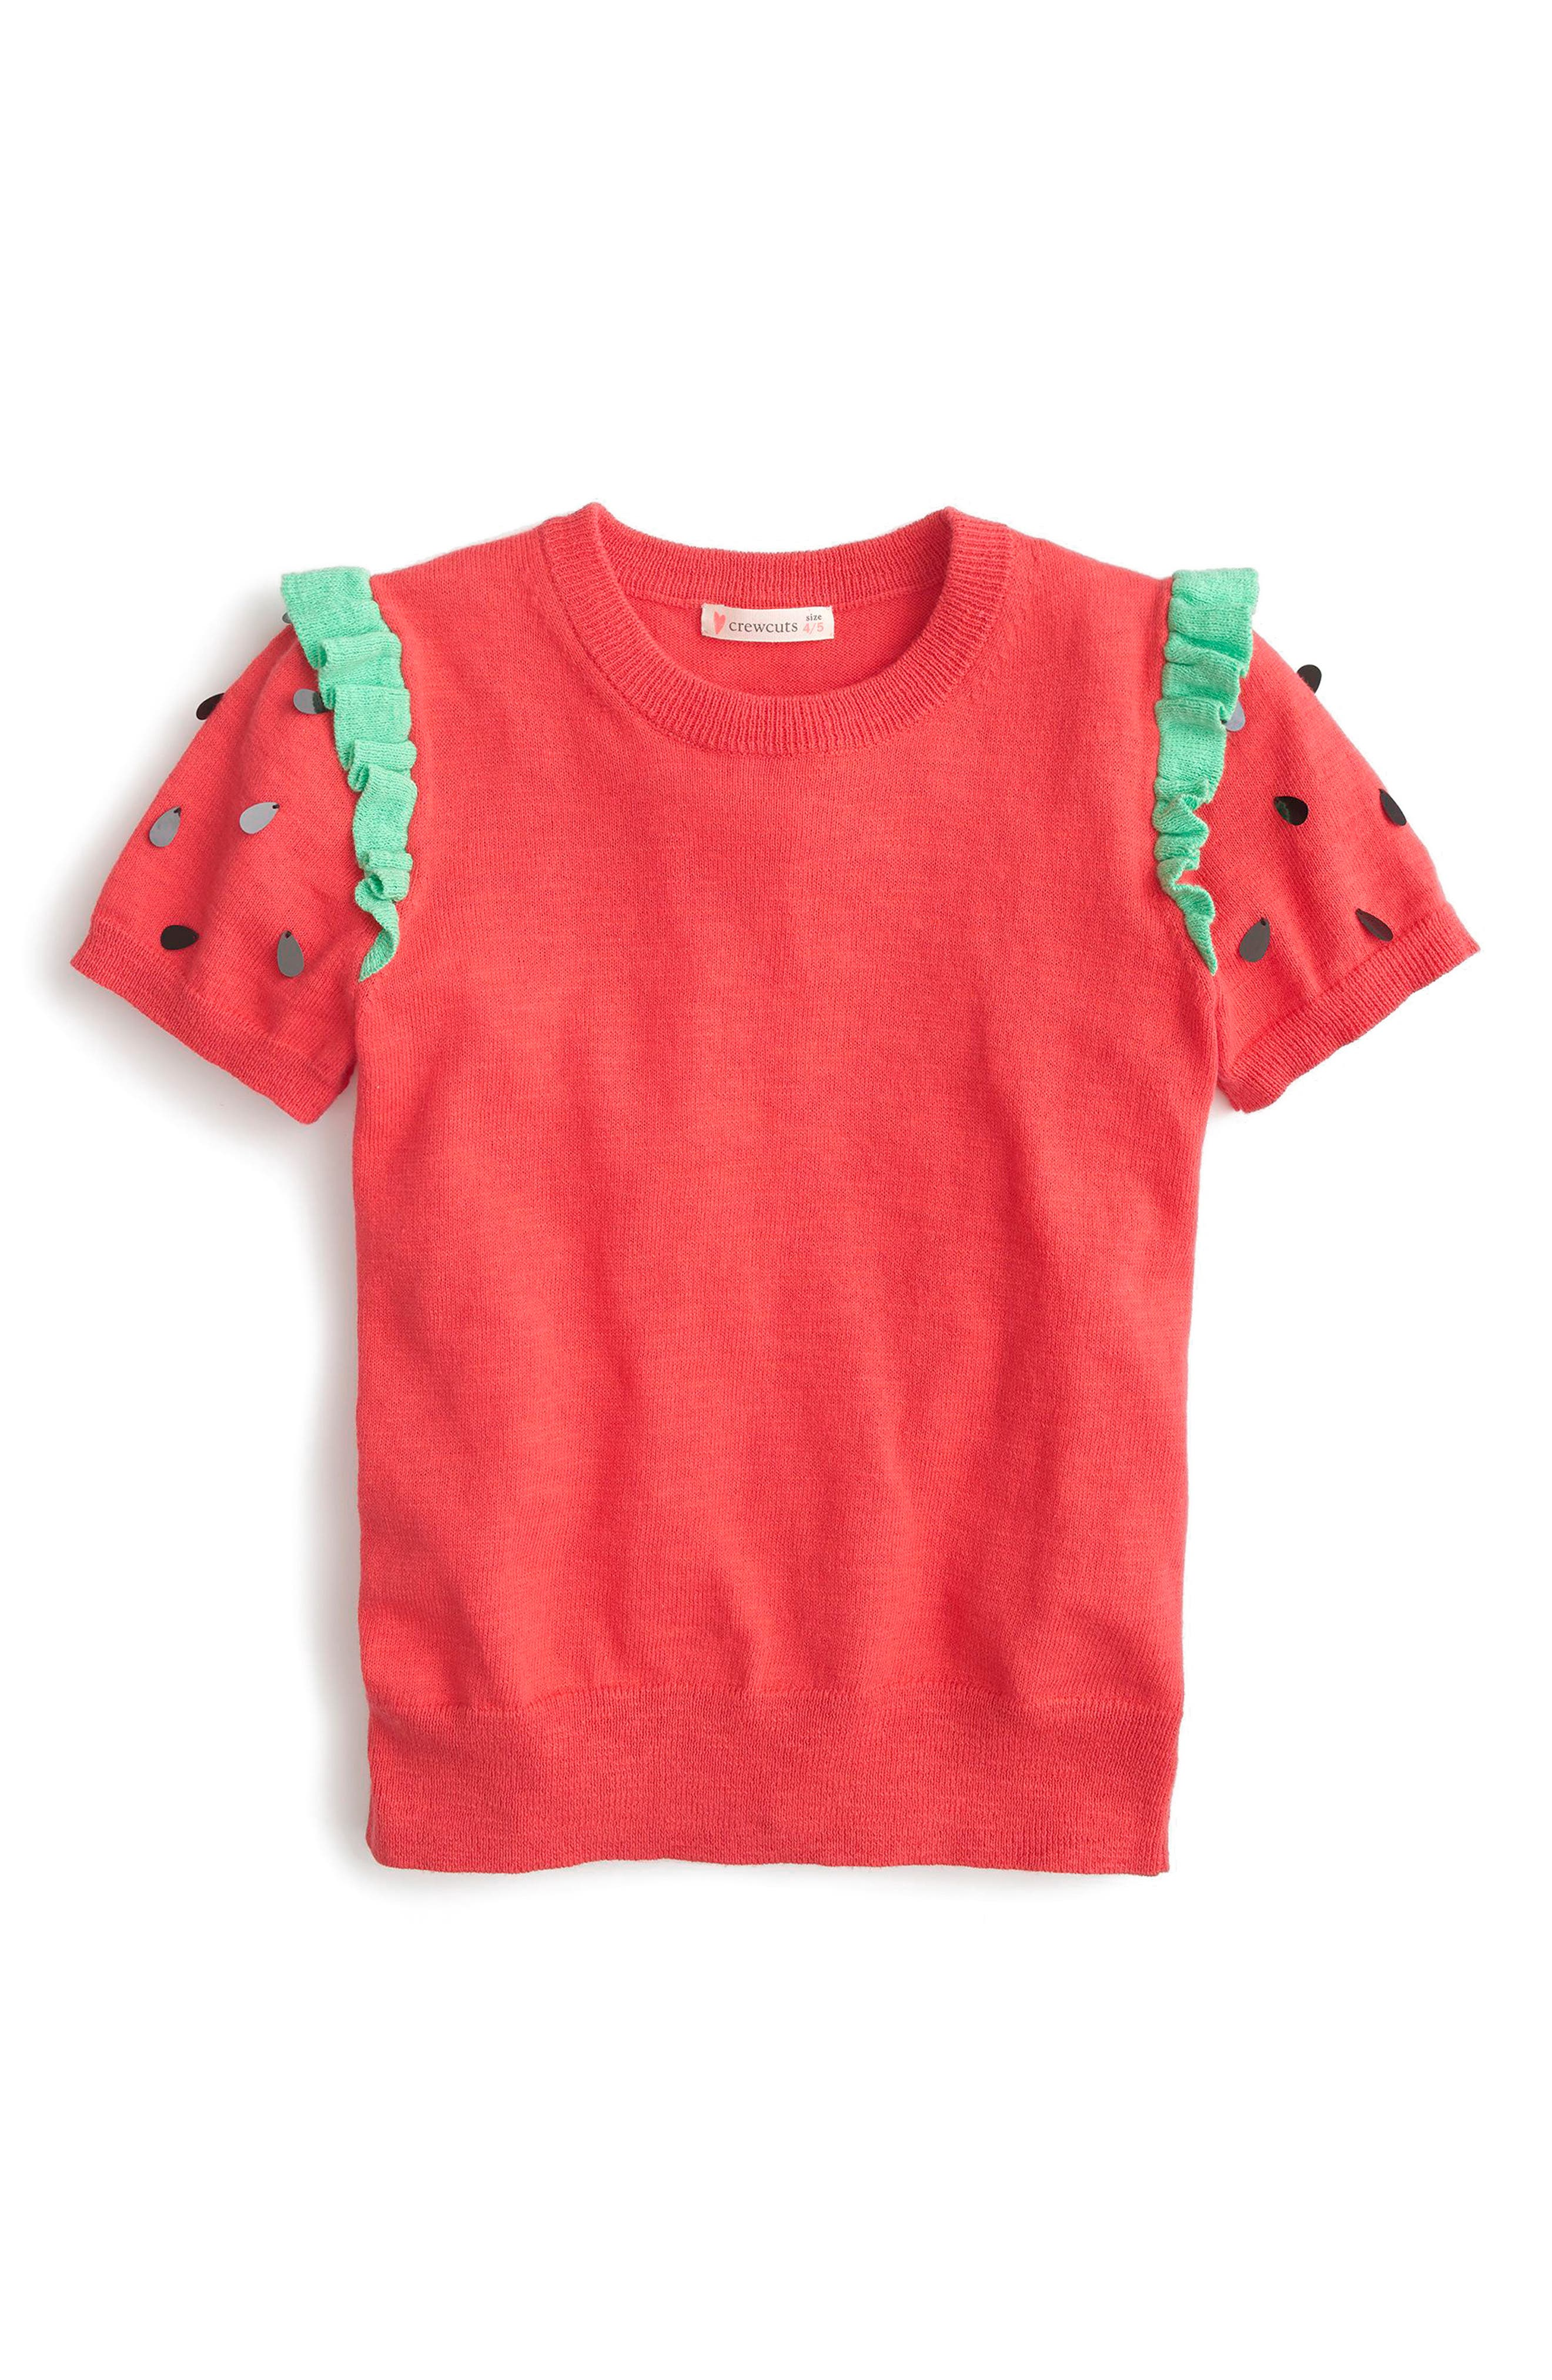 J.Crew Strawberry Goodness Short Sleeve Sweater,                             Main thumbnail 1, color,                             Red Green Multi